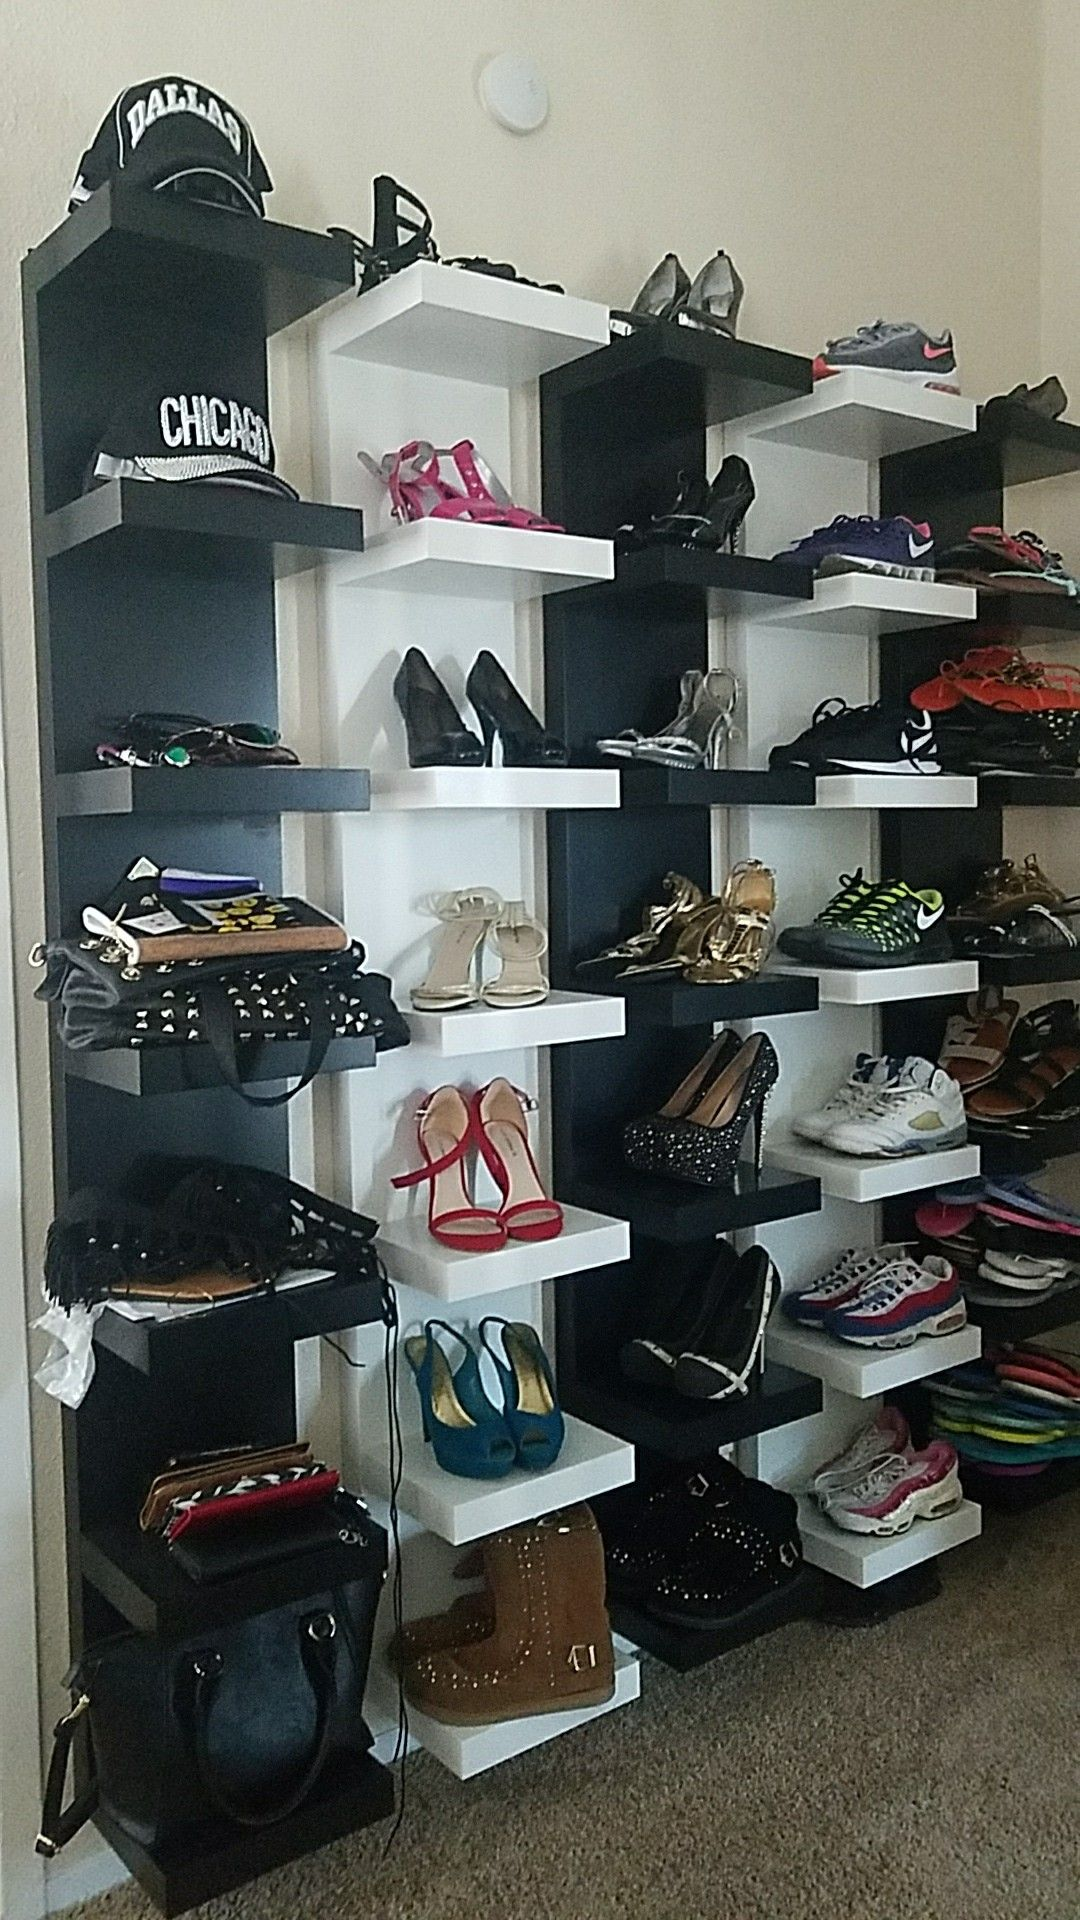 Lack Wall Shelves For All Shoes And Accessories Diy Shoe Rack